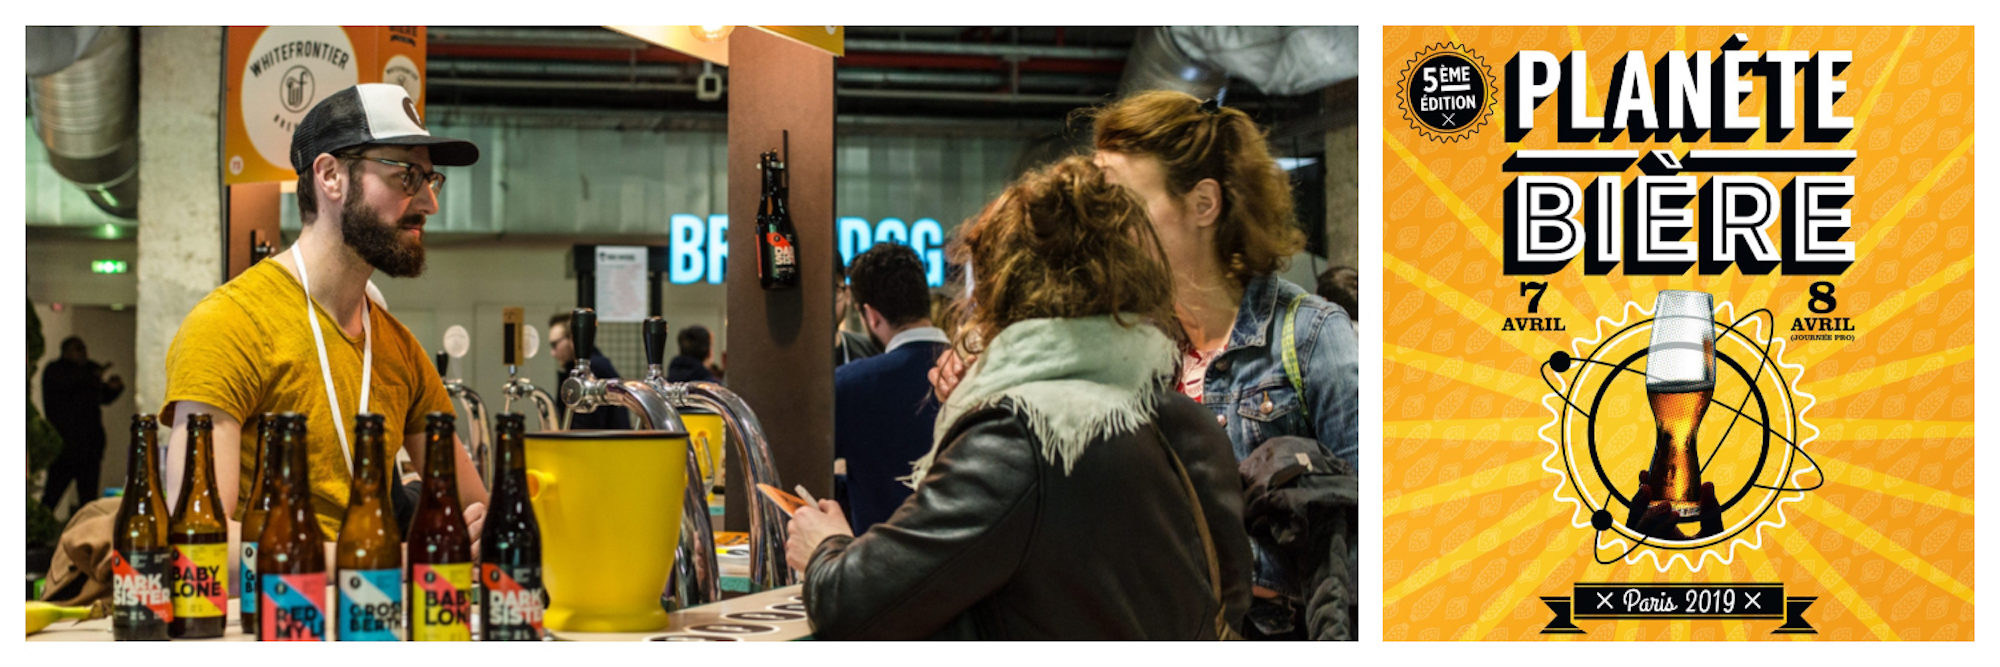 Events in Paris in April include beer festival Planète Bière, where visitors can taste lots of different beers like these two ladies at a bar at the event (left). The flyer for the Planète Bière beer festival in Paris in April (right).